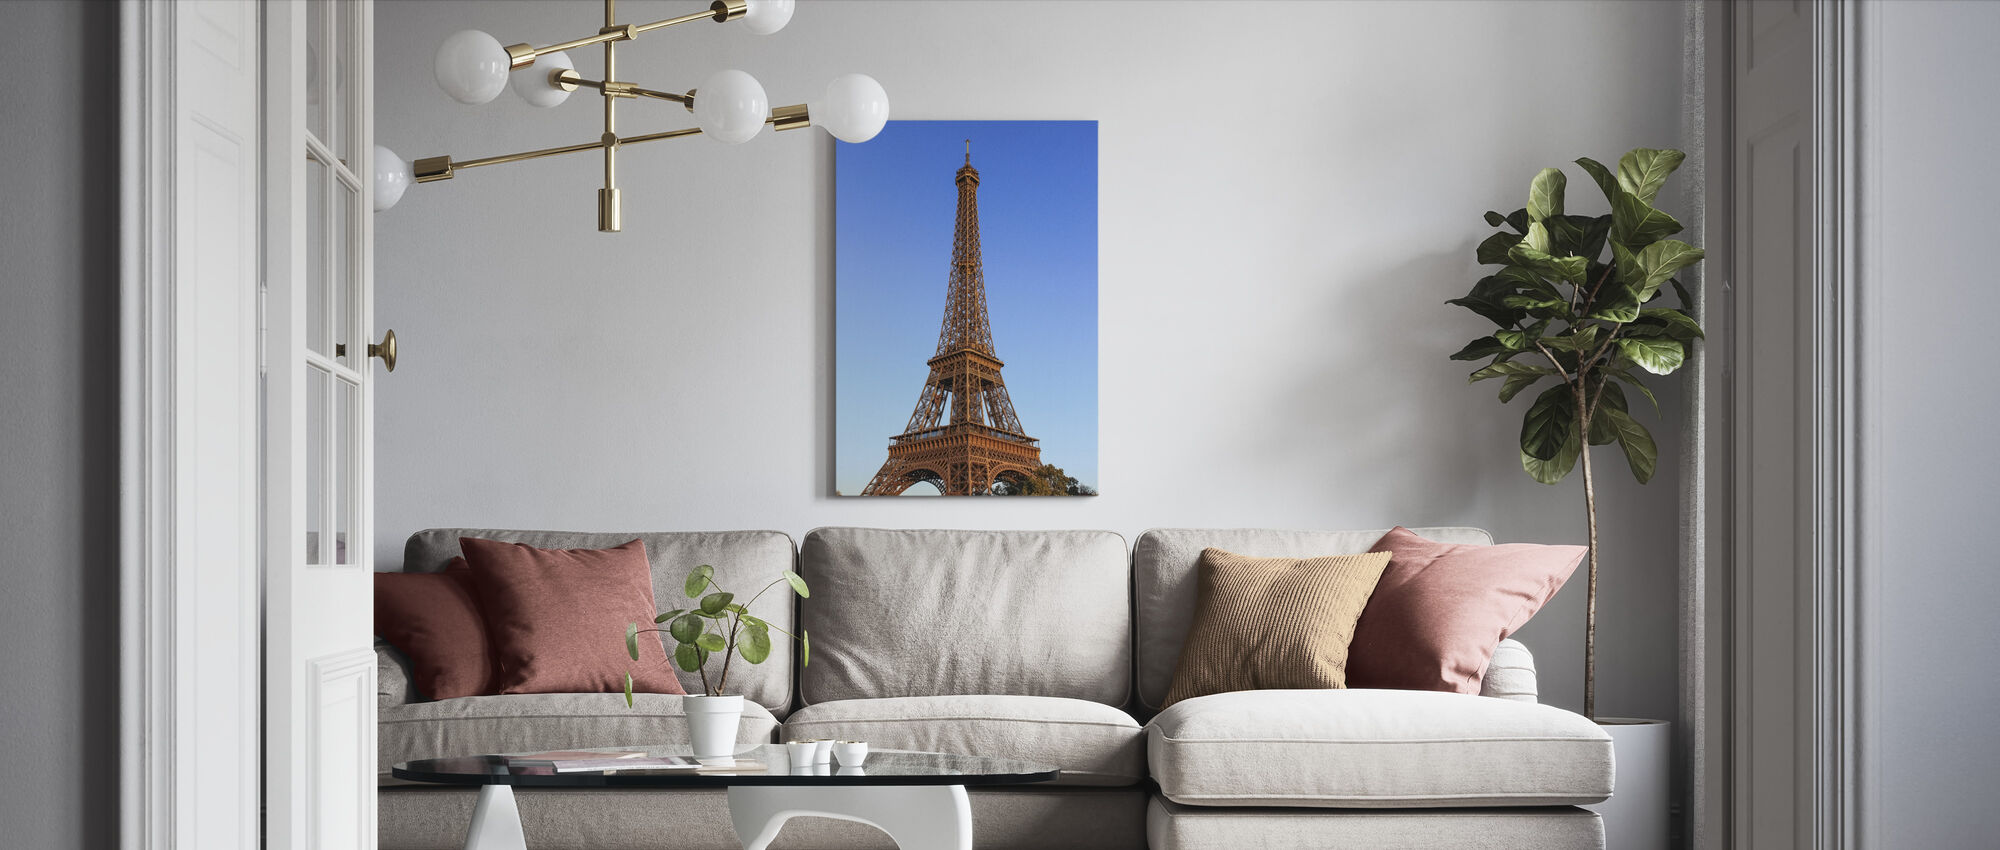 Eiffel Tower - Canvas print - Living Room